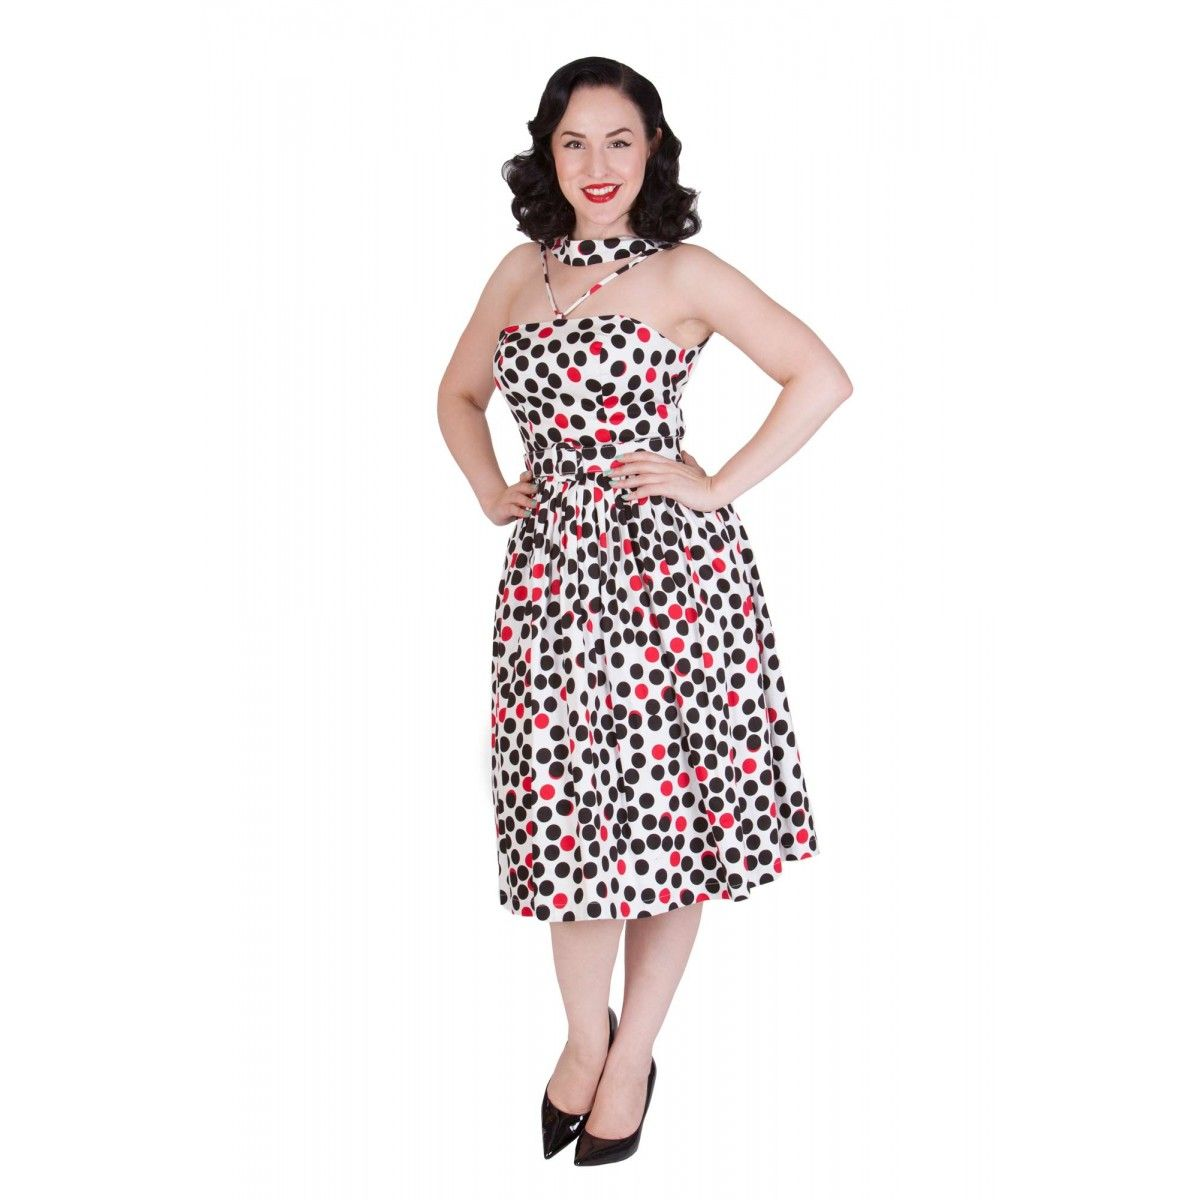 dd54125bcc1 Tatyana - Ping Pong Polka Dot Halter Swing Dress - Size XL | Swap ...